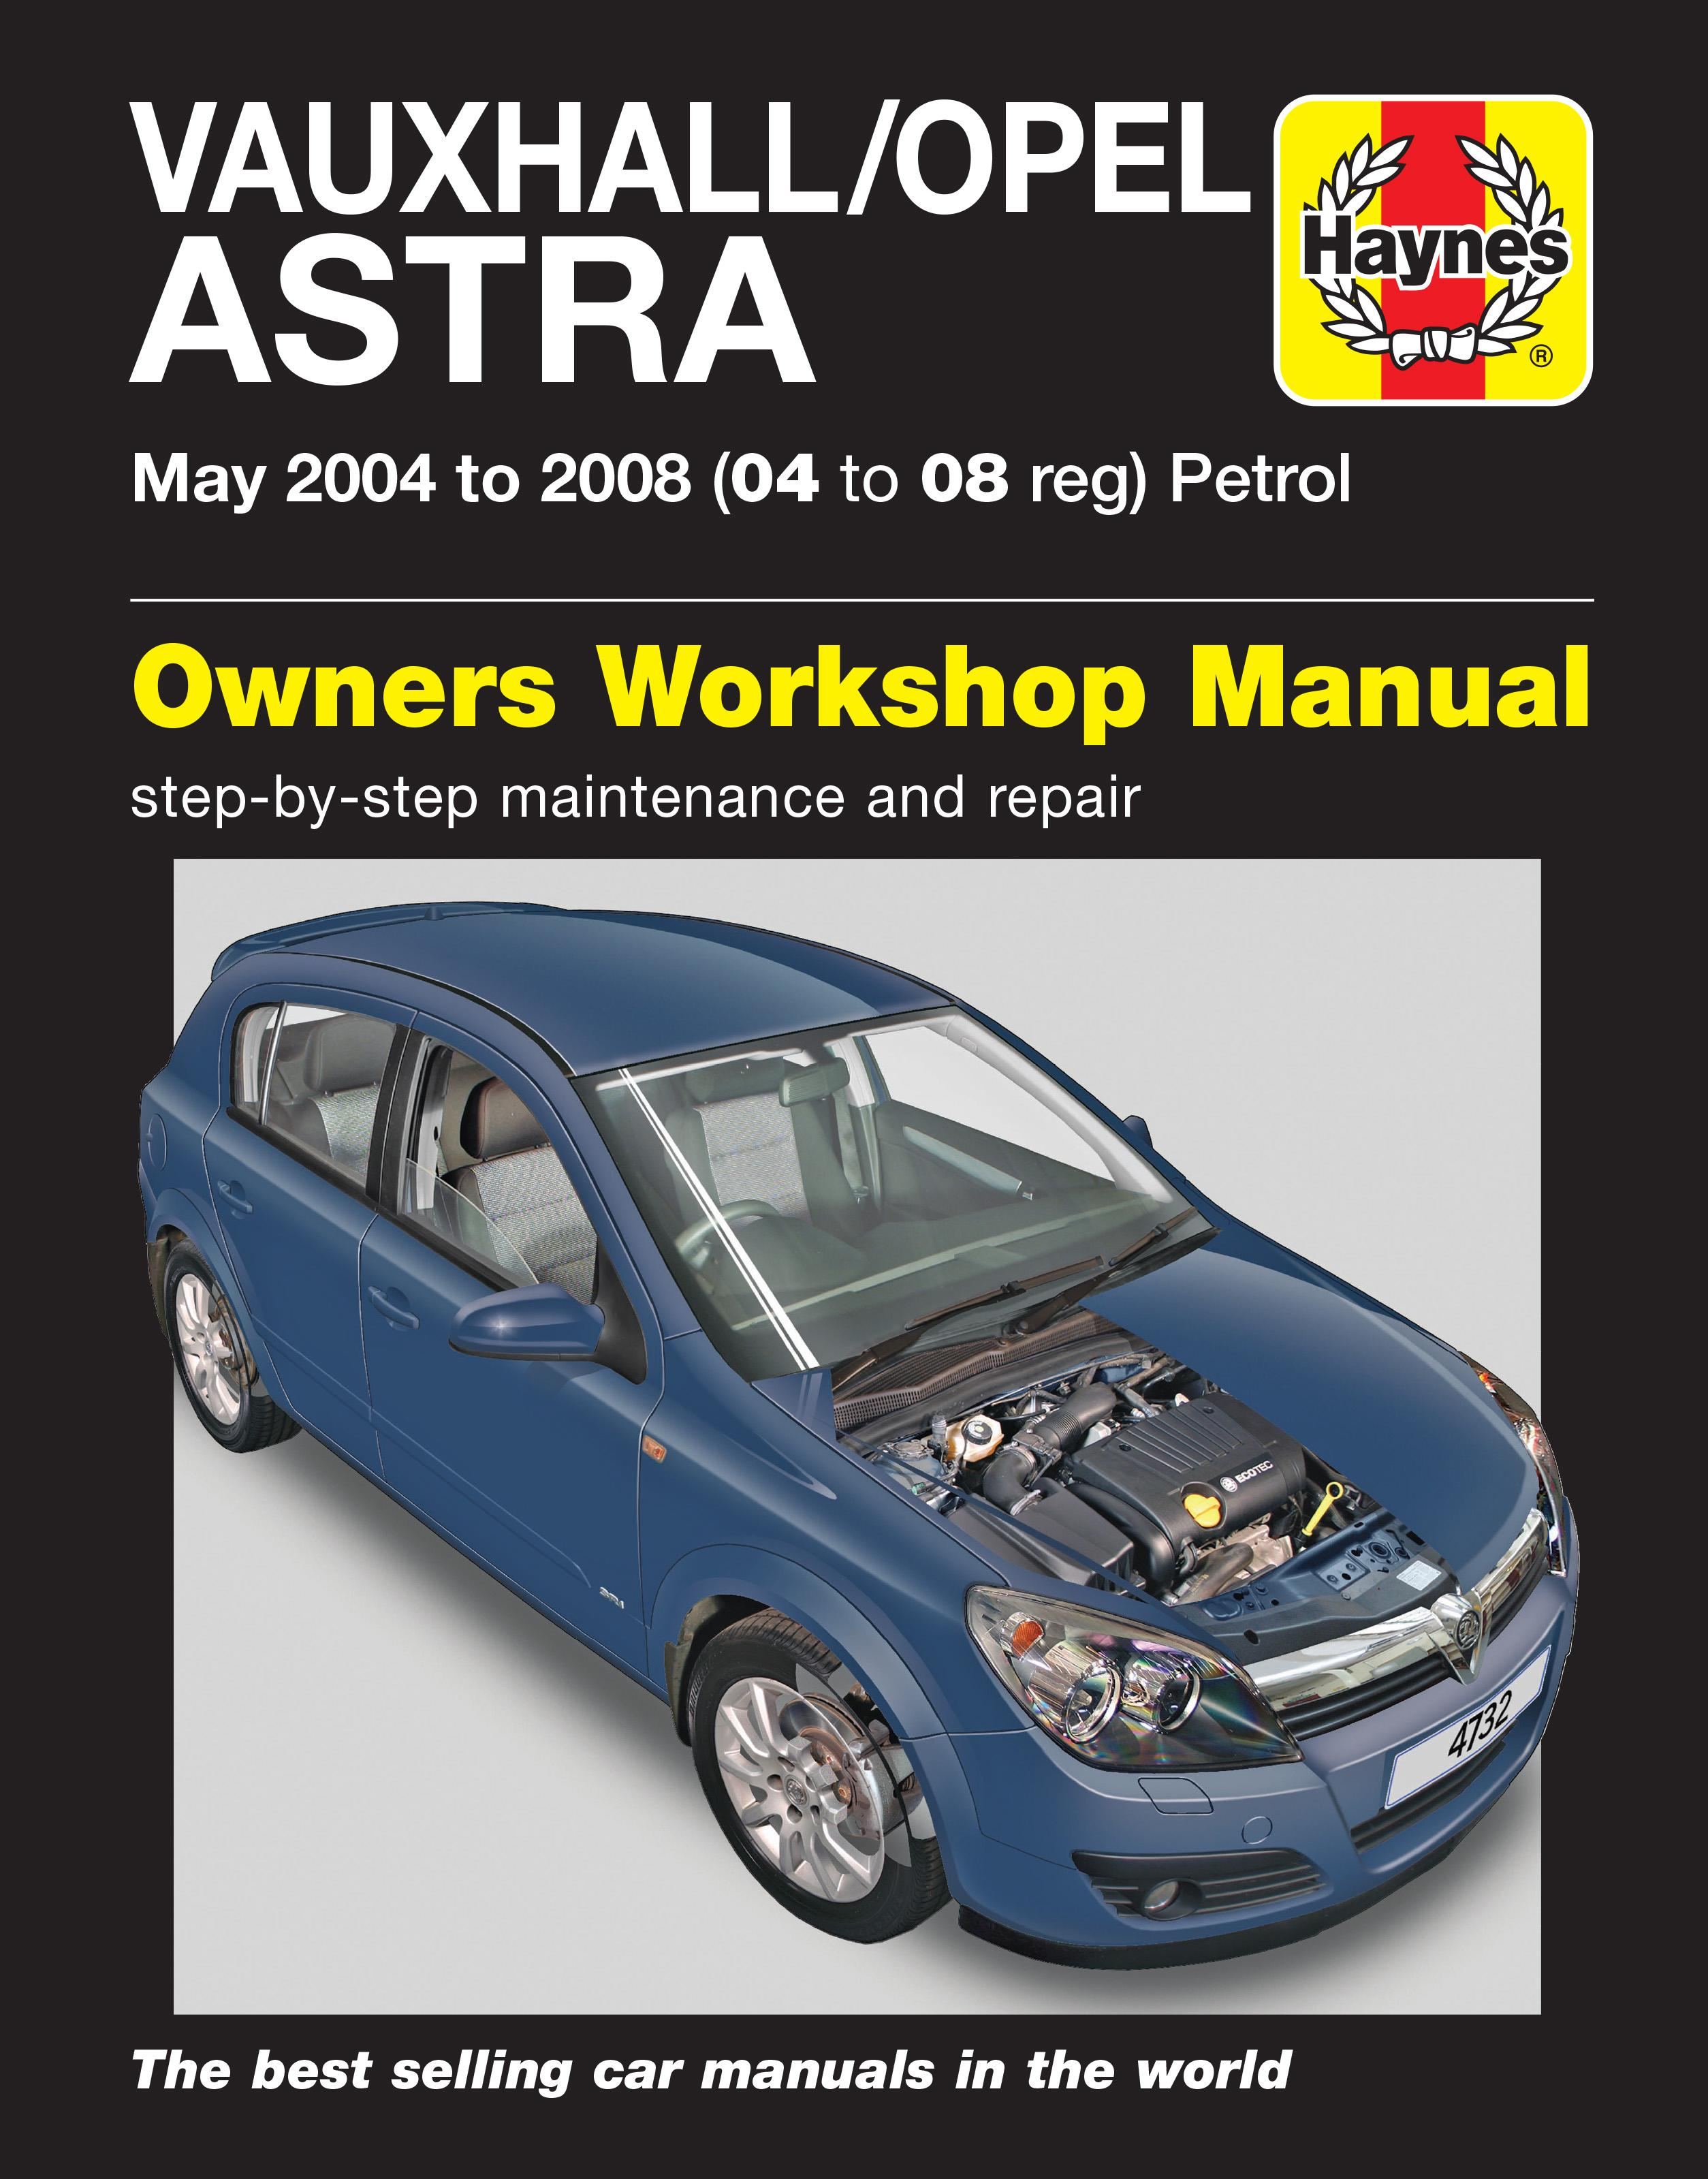 haynes vauxhall astra may 04 08 rh halfords com opel astra h 2008 service manual opel astra h owner's manual pdf